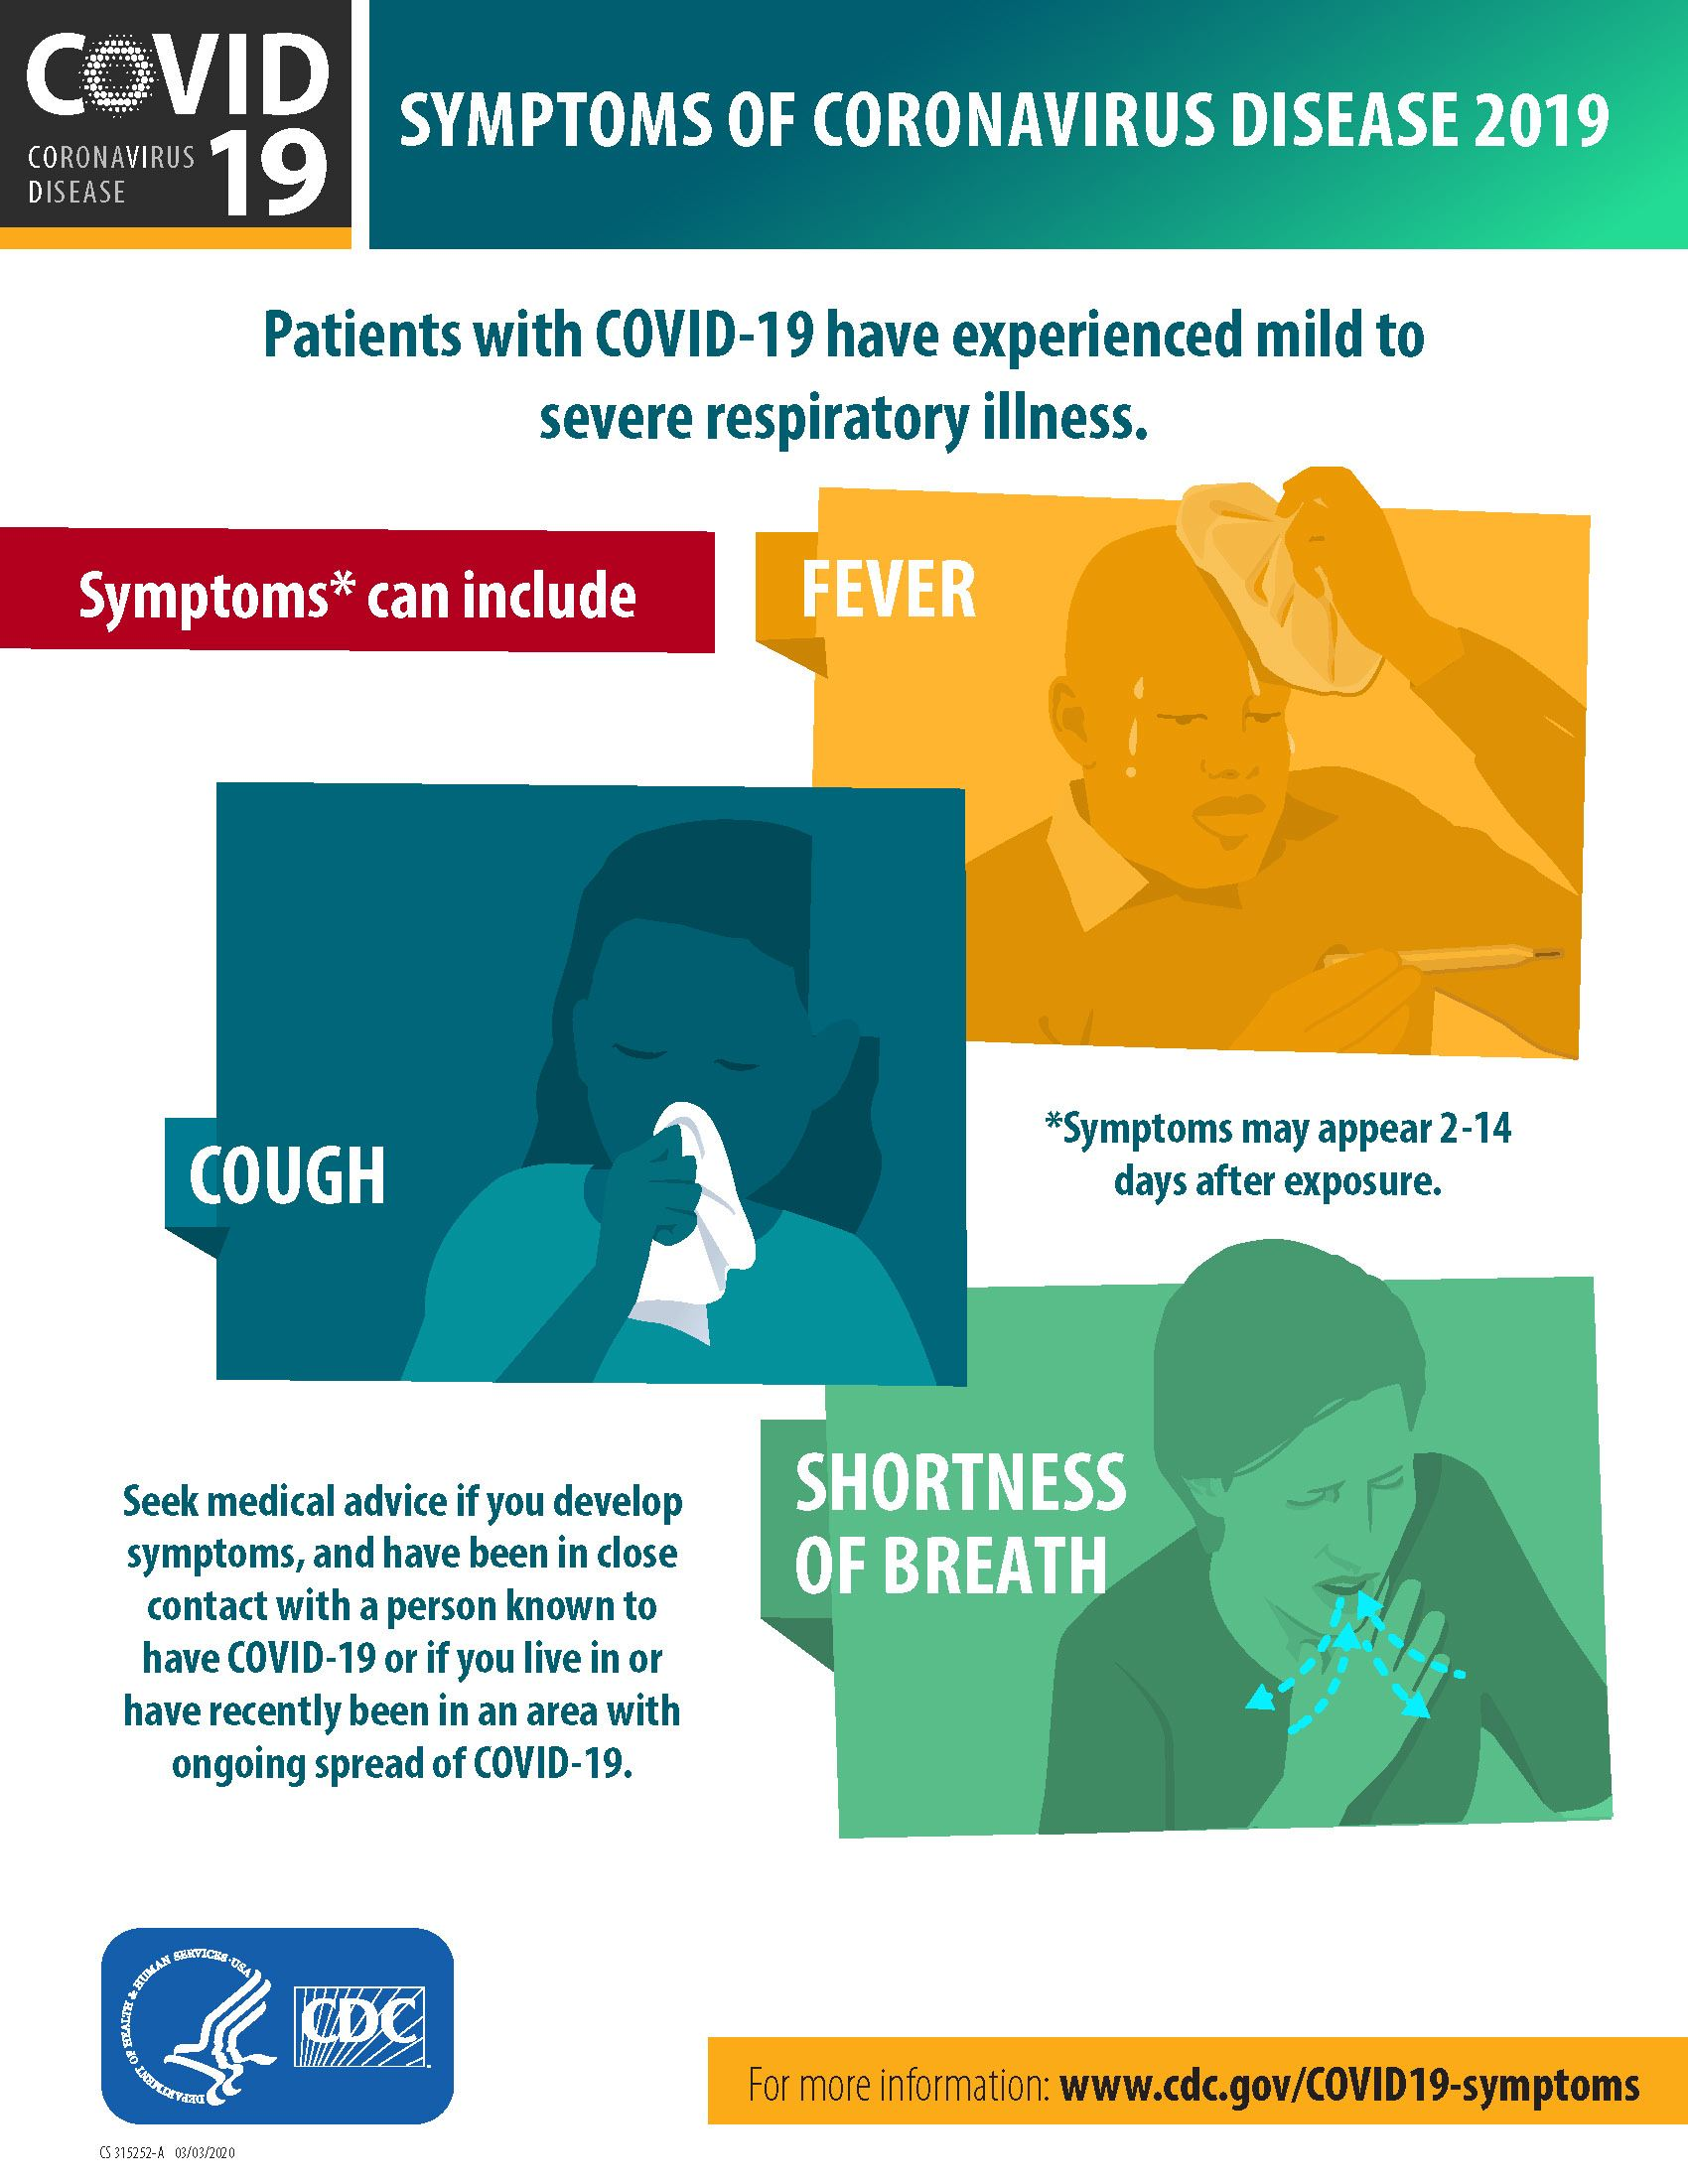 Symptoms can include fever, cough, and shortness of breath.